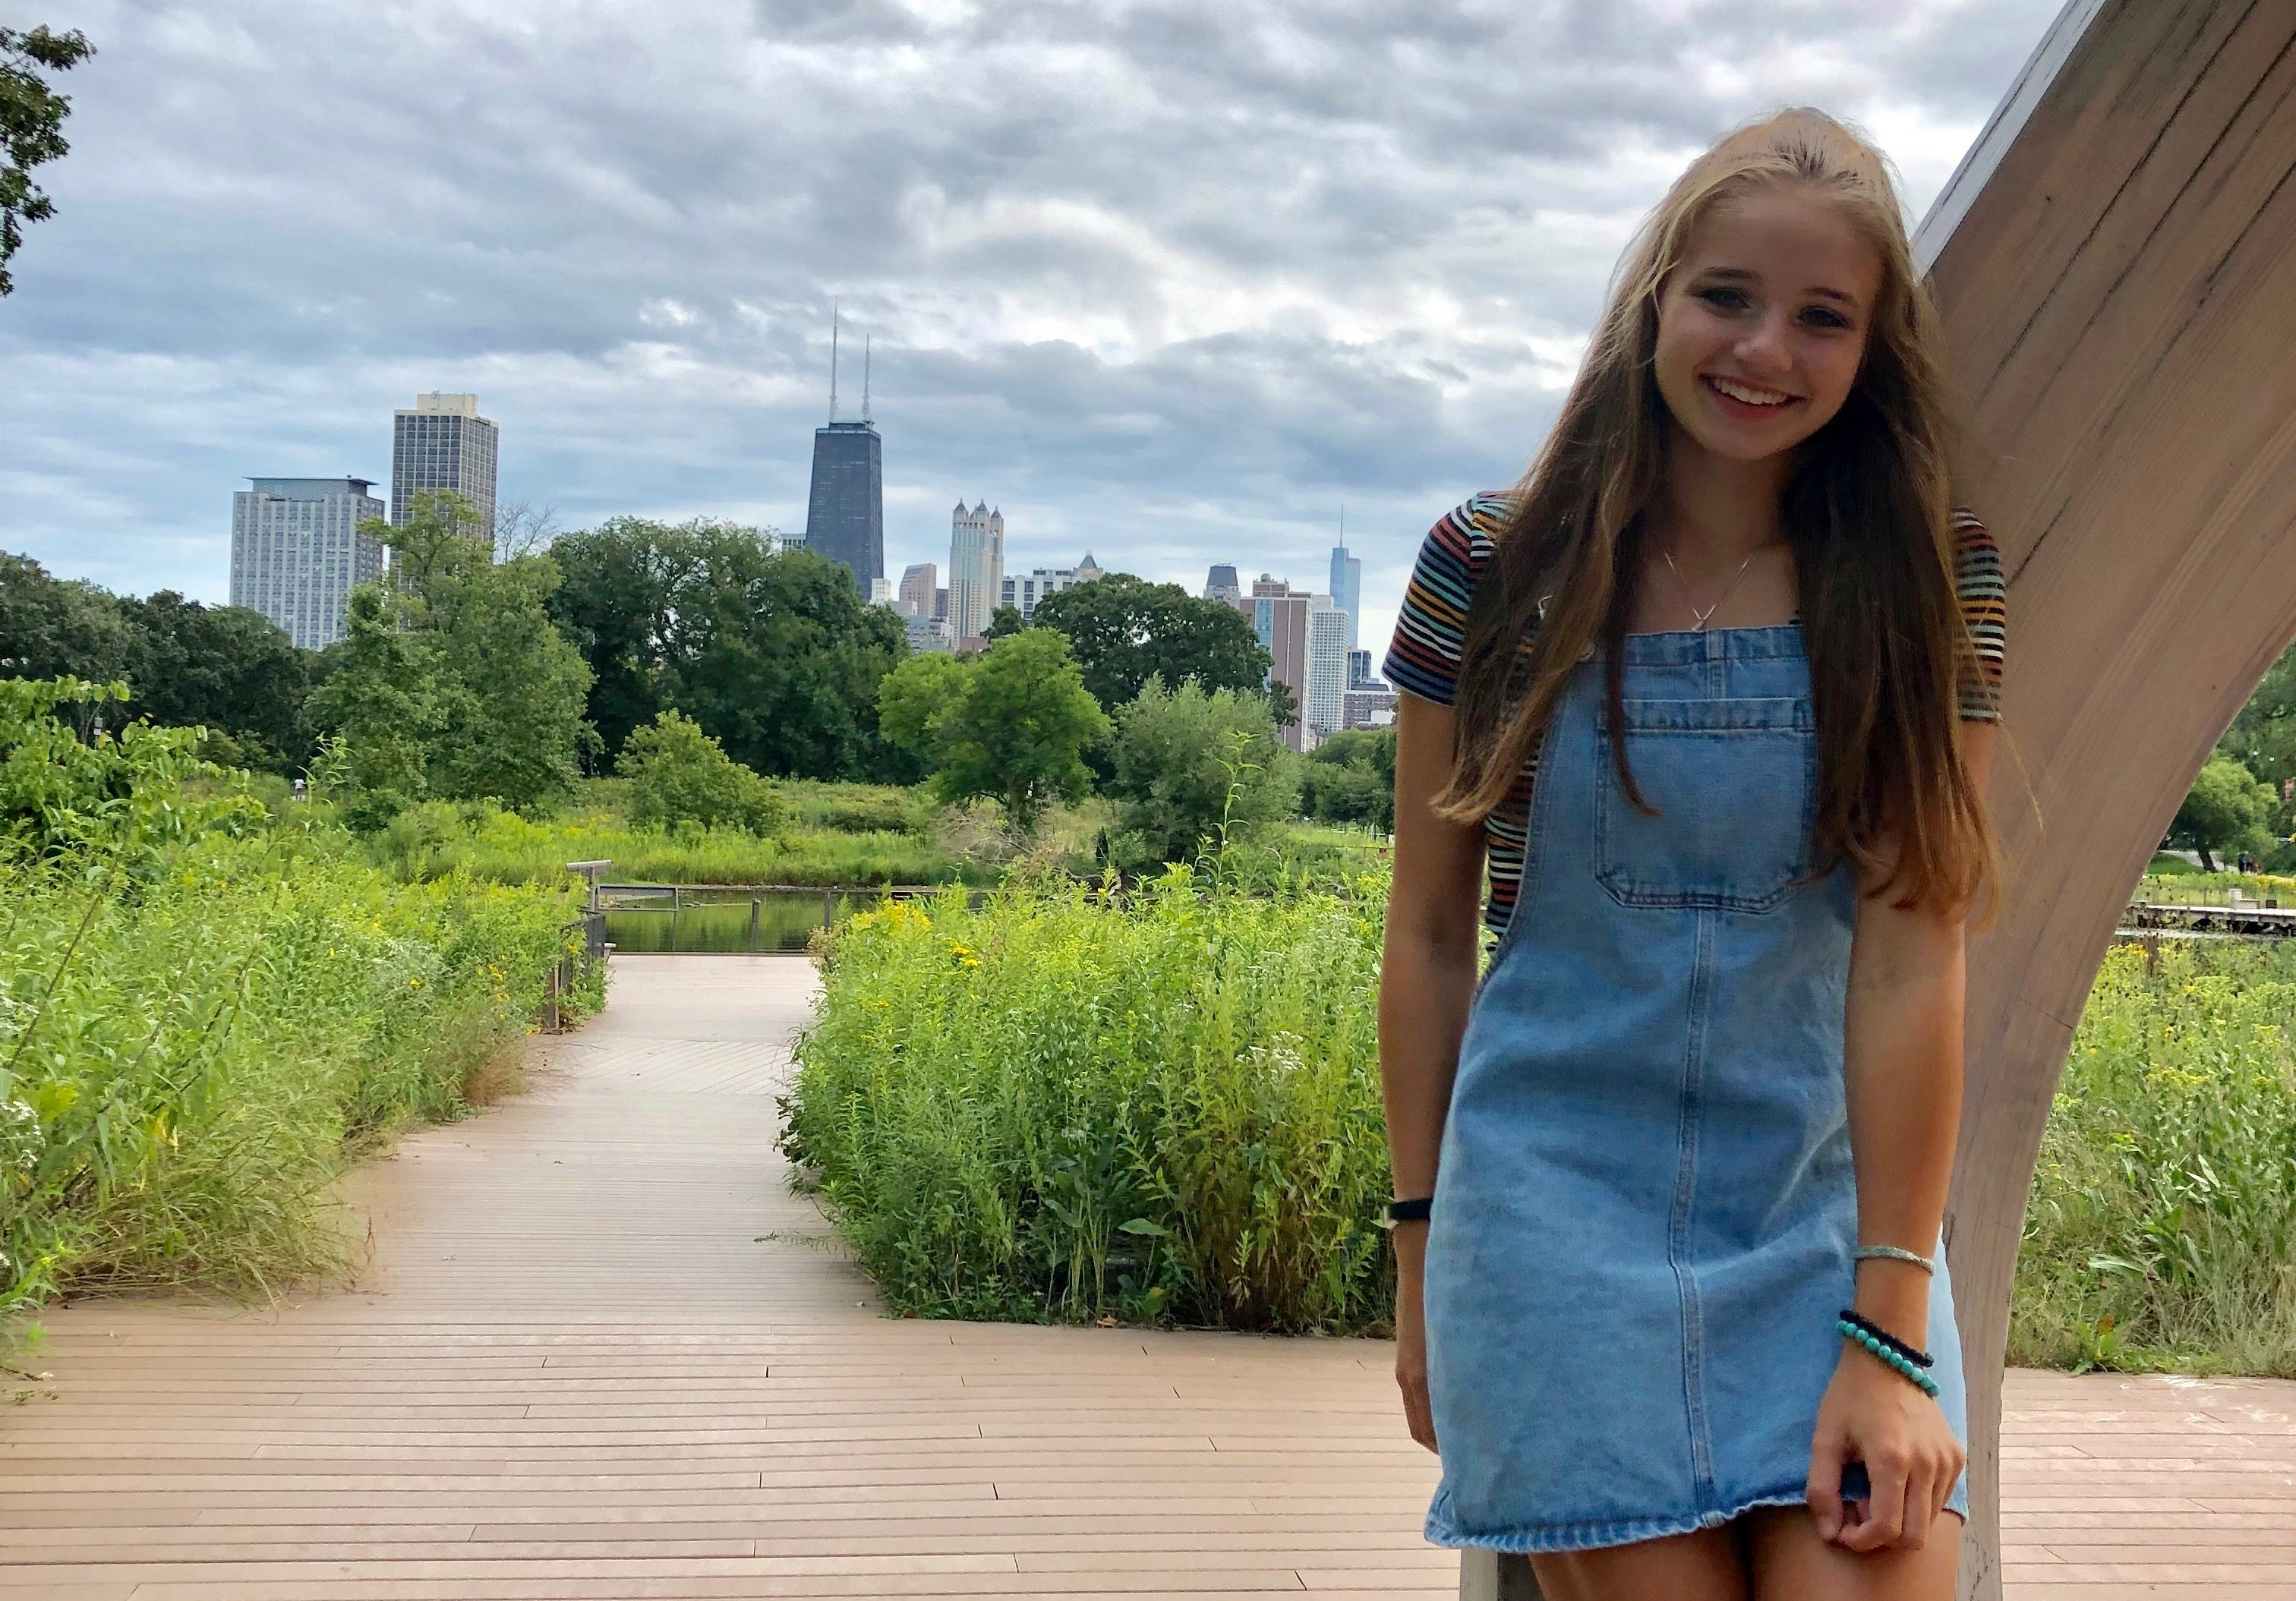 A young woman standing on a park pathway with the Chicago skyline behind her.